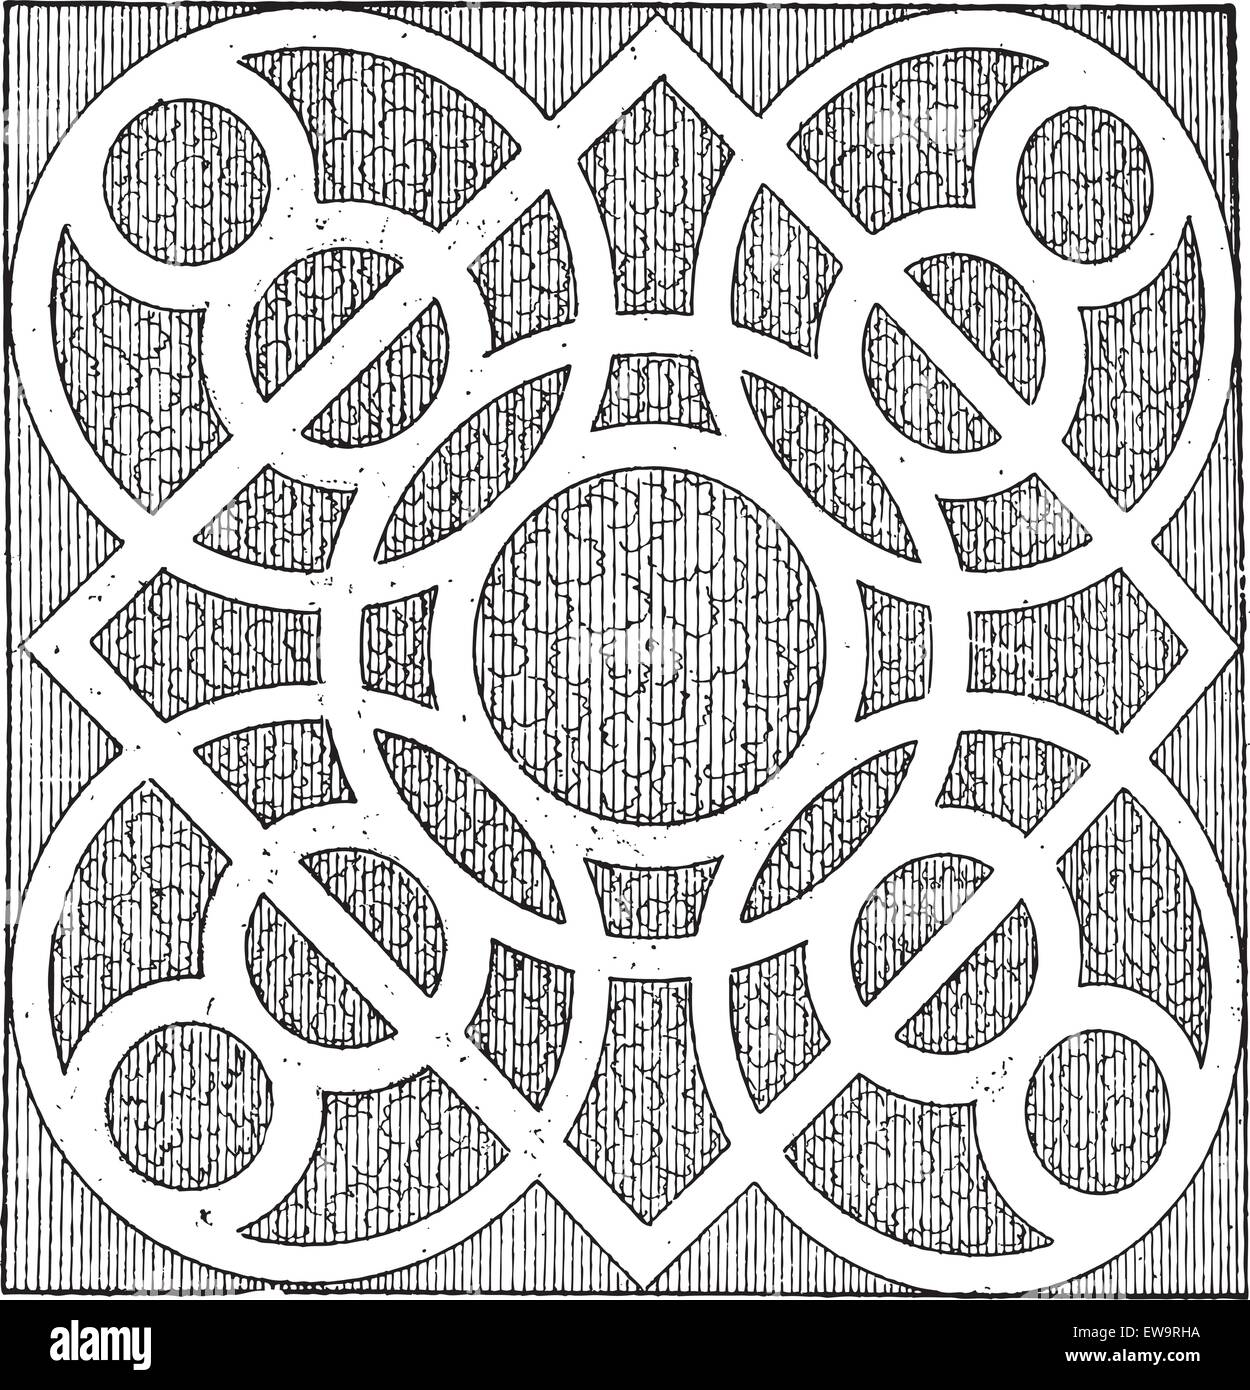 Meander, Labyrinth Pattern of the Garden of Cleanliness, by Androuet du Cerceau, vintage engraved illustration. - Stock Image